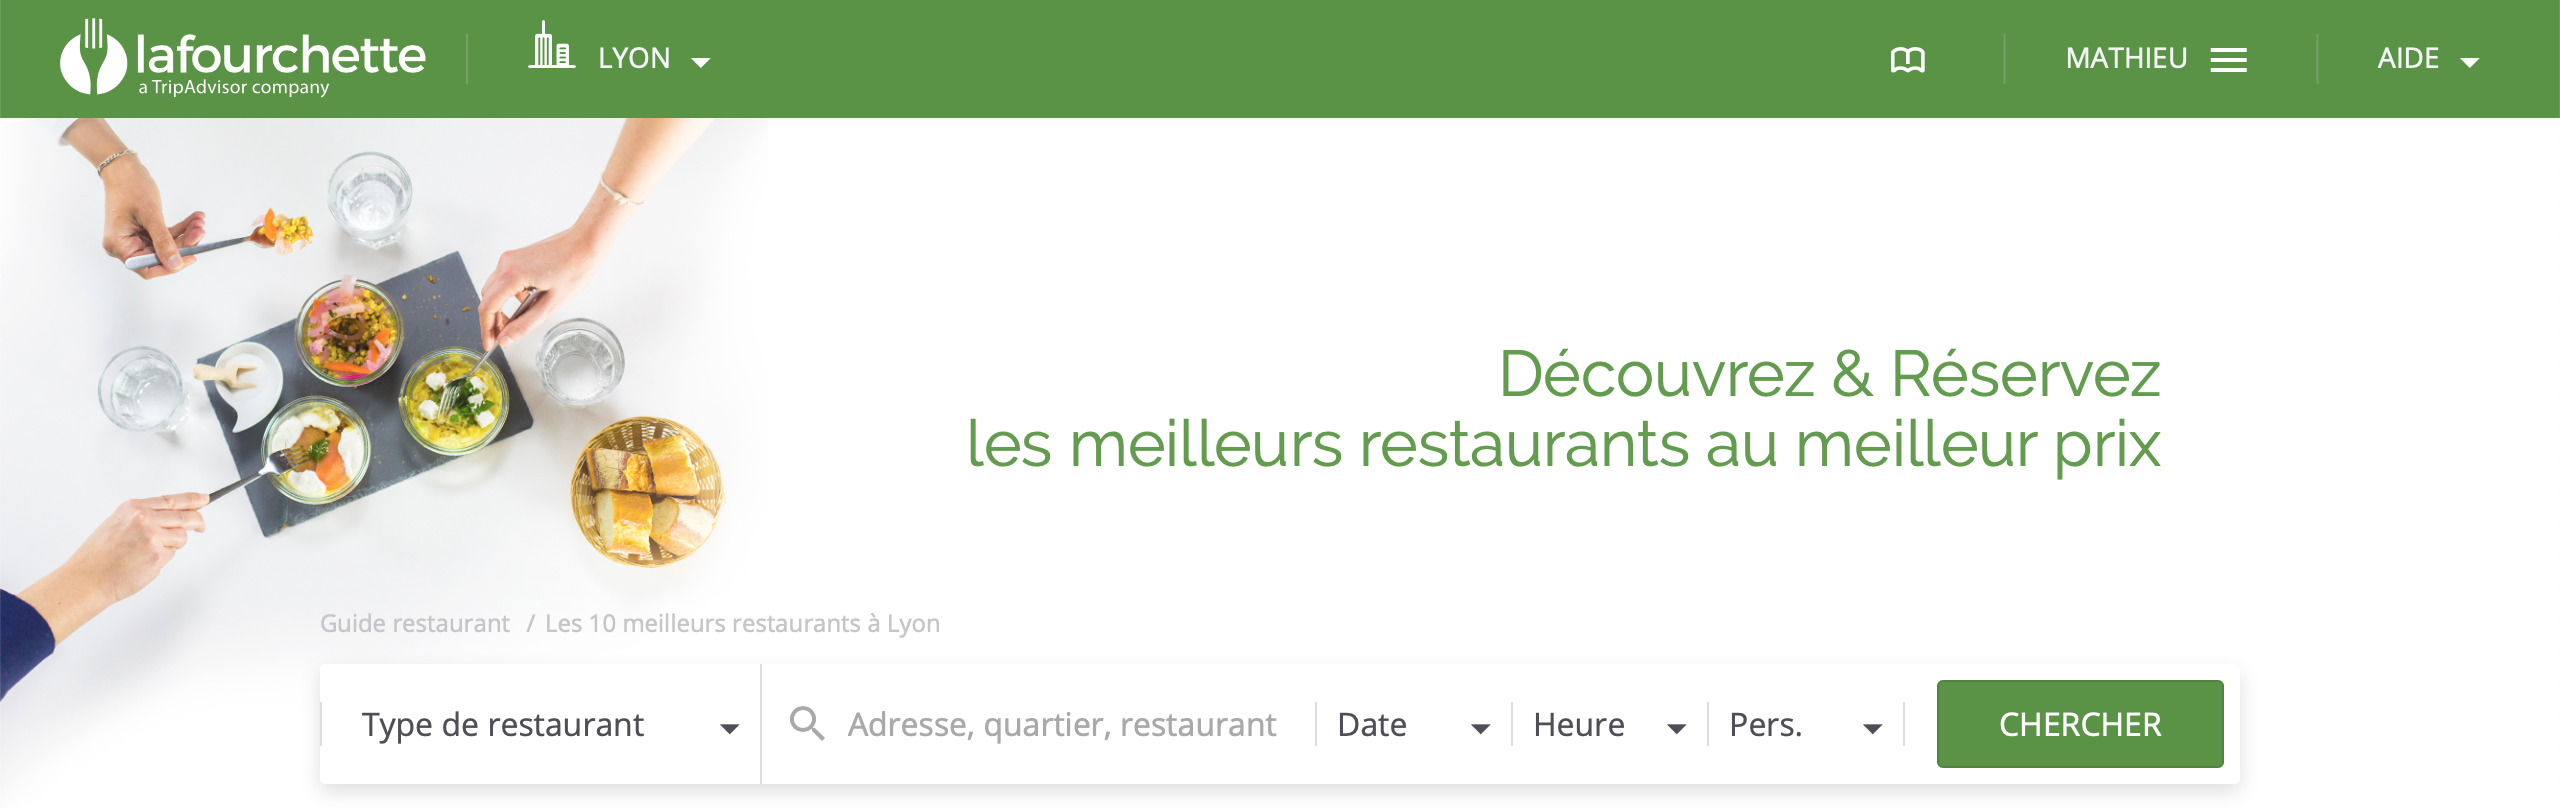 How to book a restaurant in Lyon With LaFourchette (The Fork)